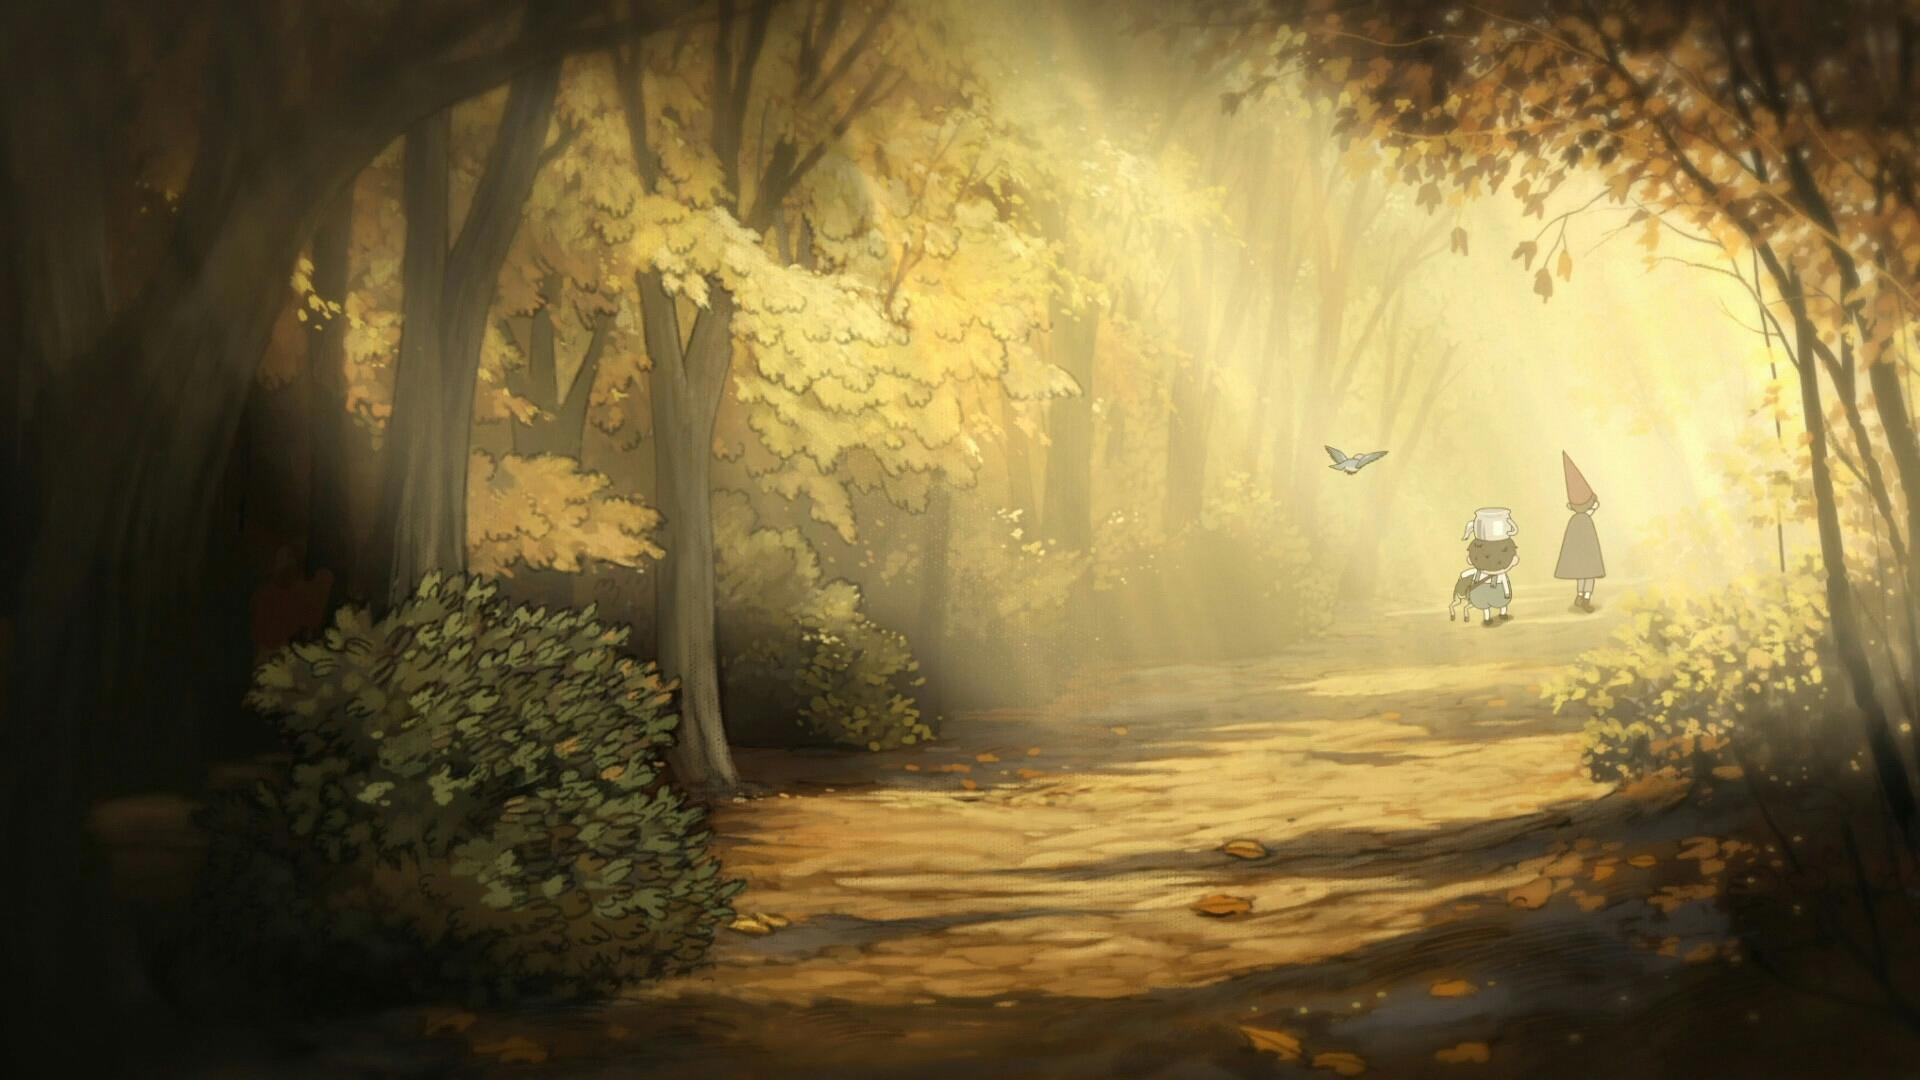 Over The Garden Wall Wallpapers For Android Apk Download